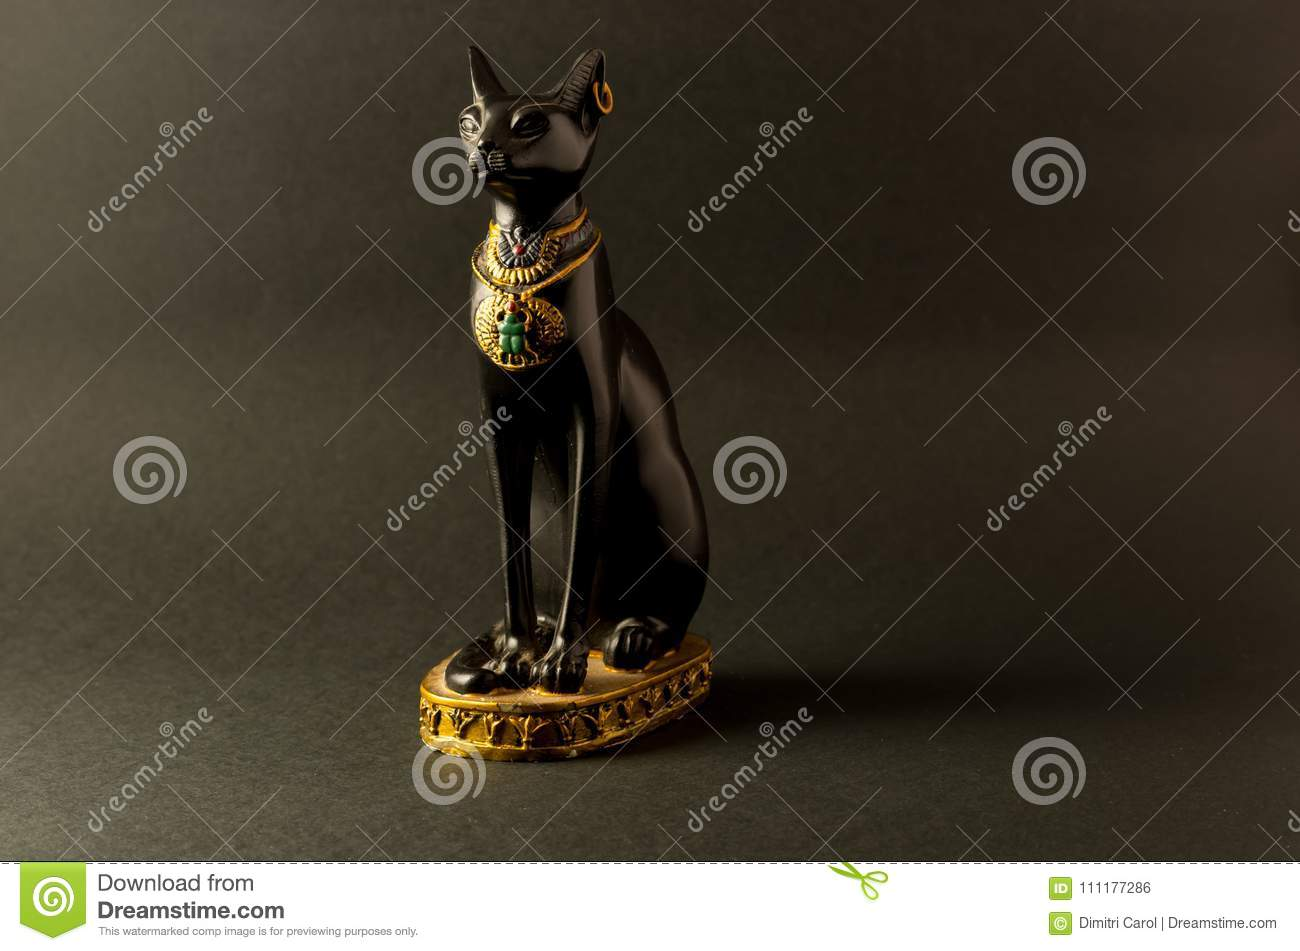 Egyptian black bastet cat figurine on black background